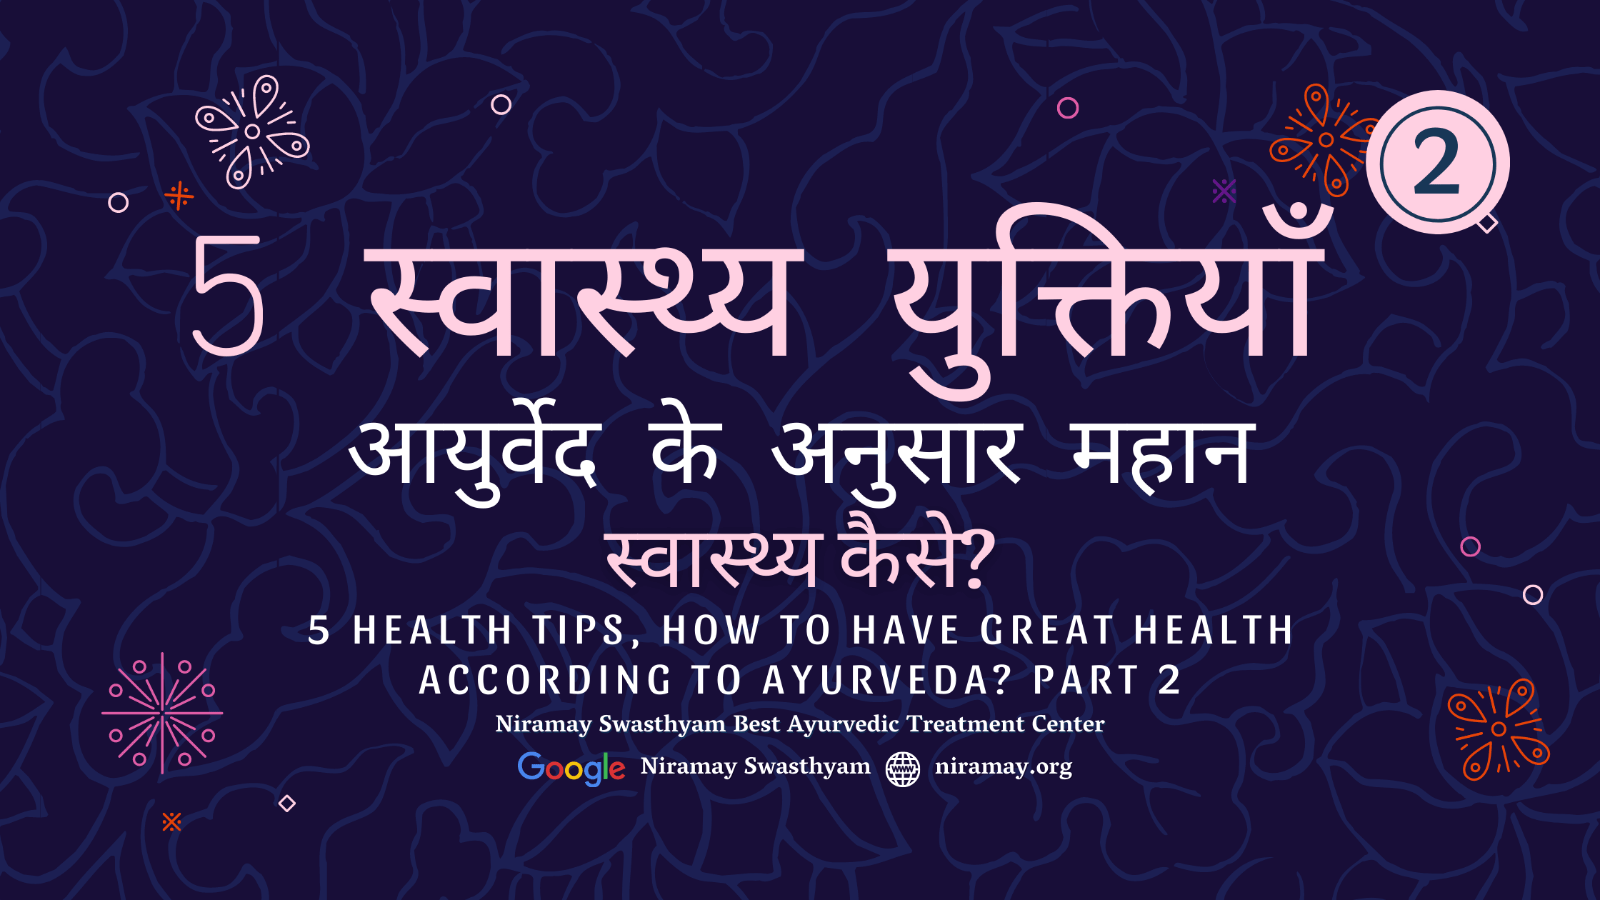 5 Health Tips, How to Have Great Health According to Ayurveda? Part 2